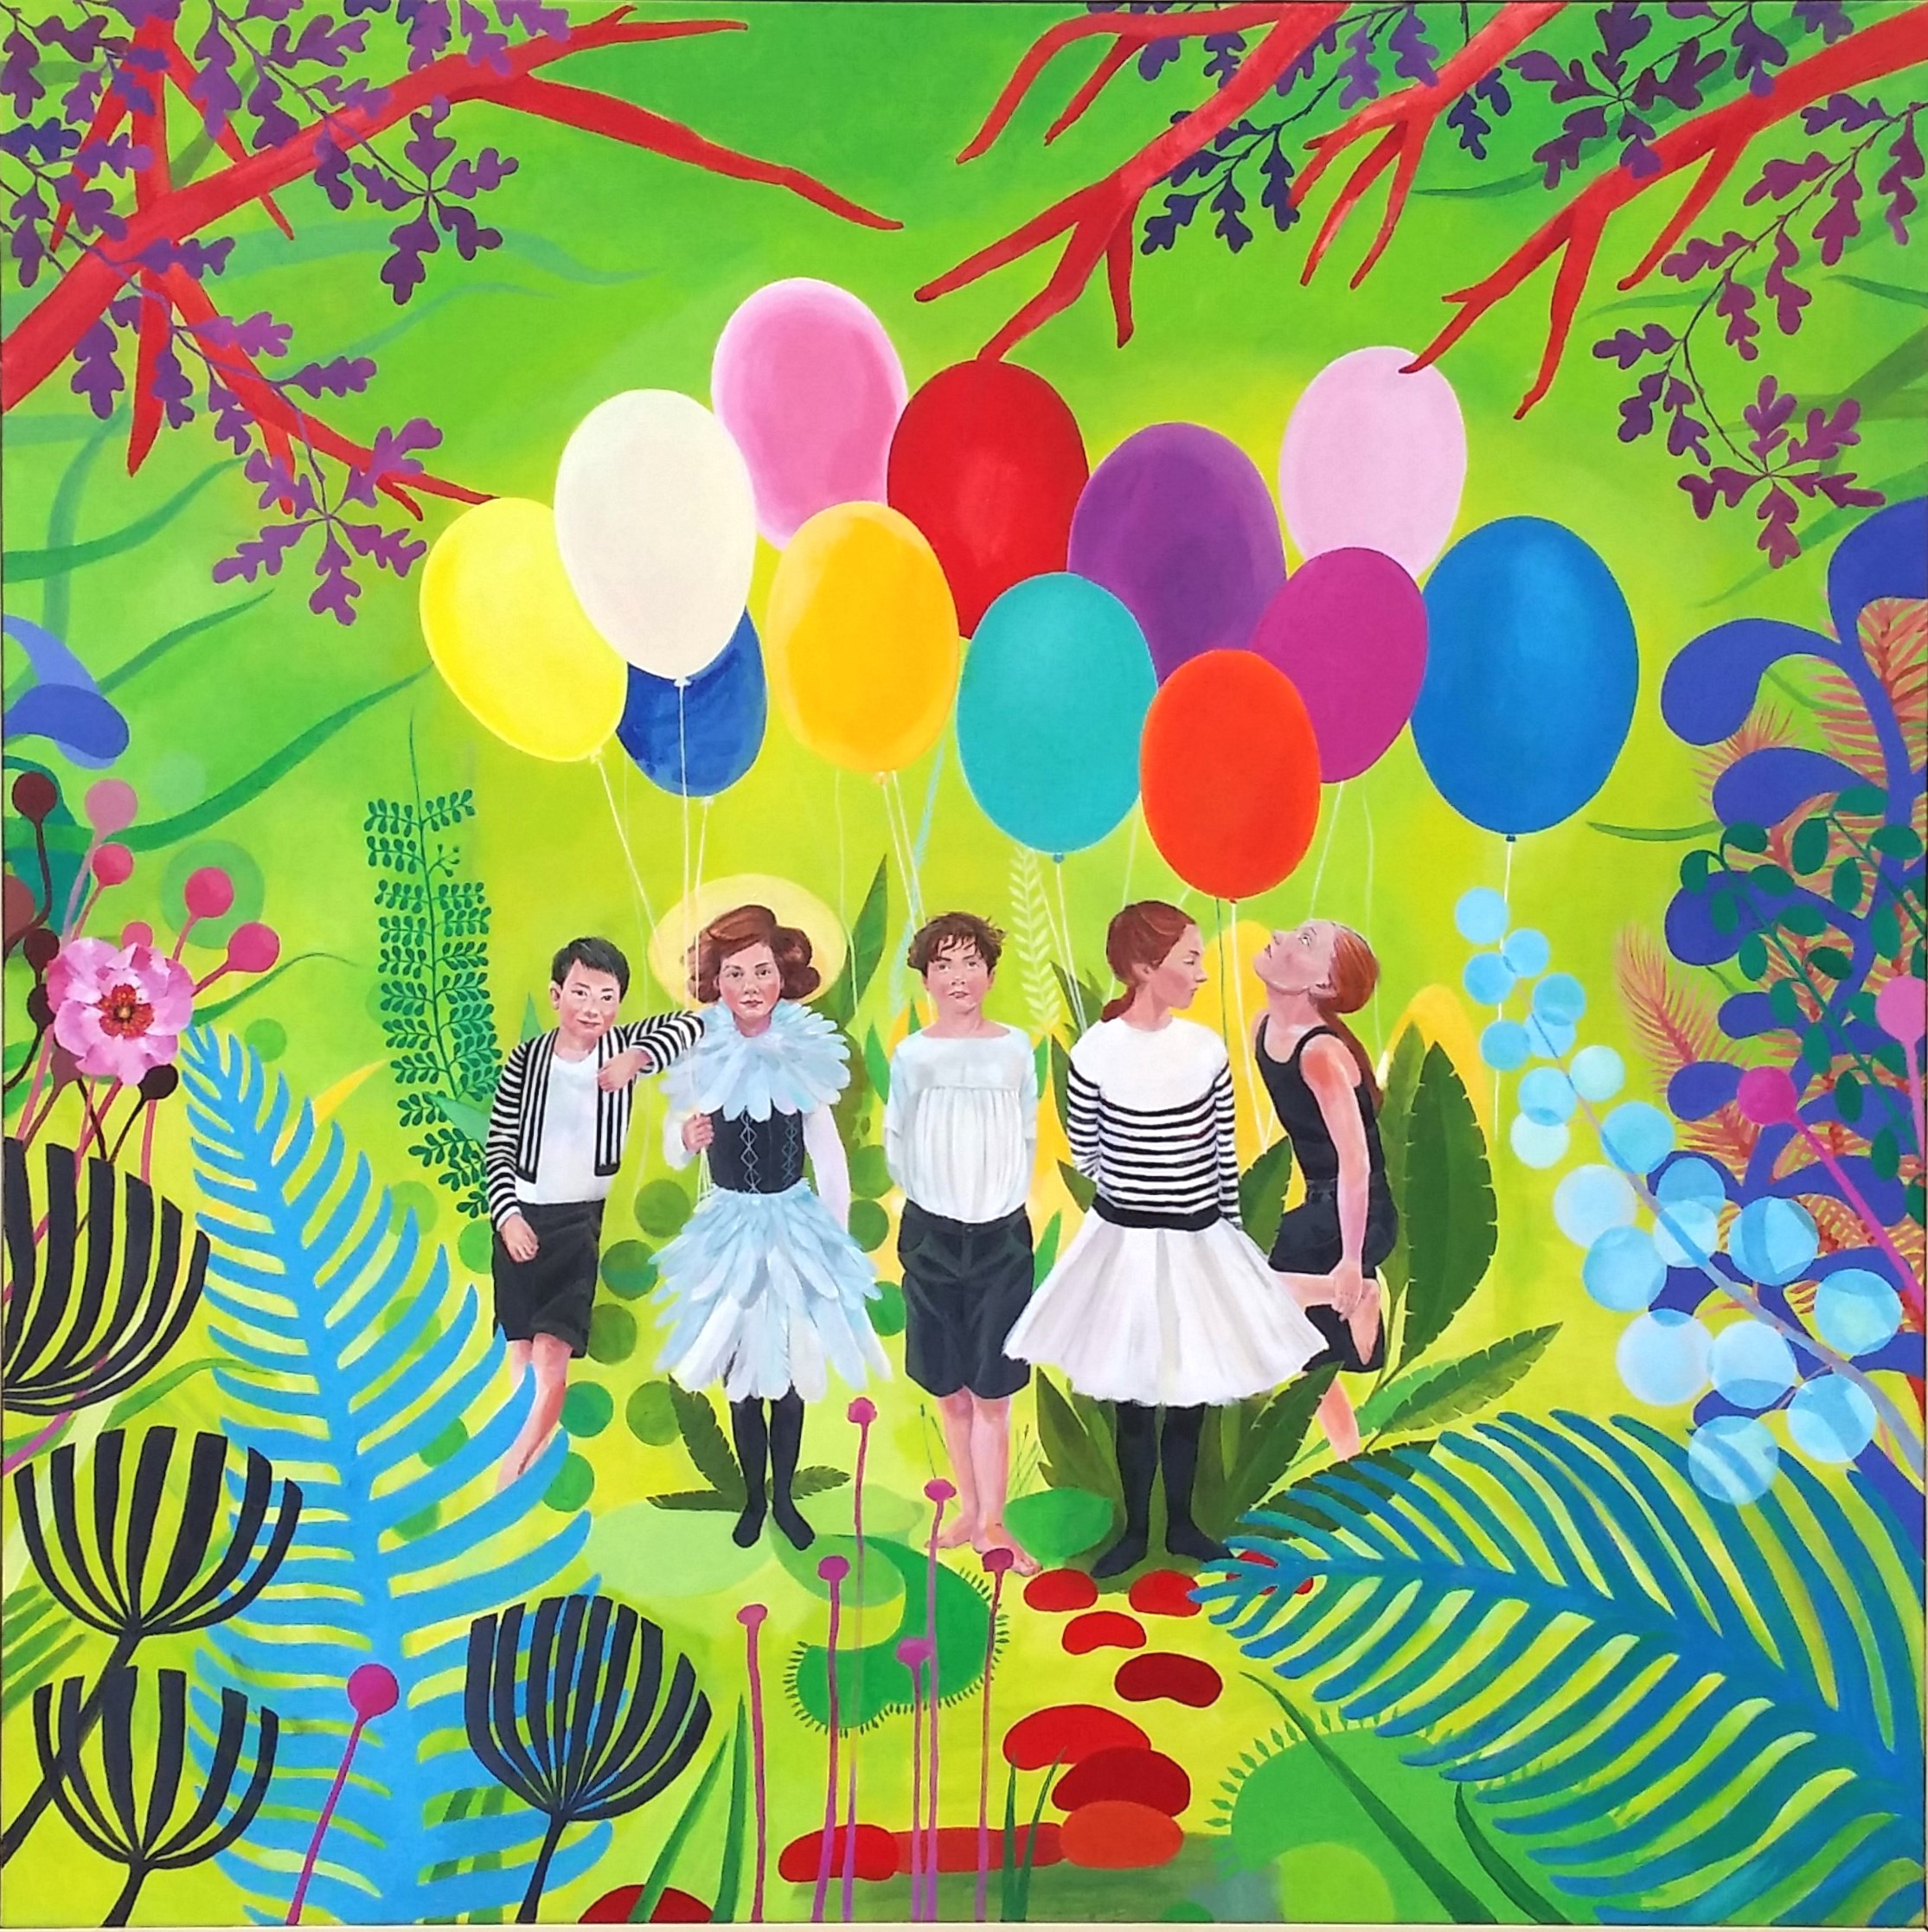 Kids in woods with balloons